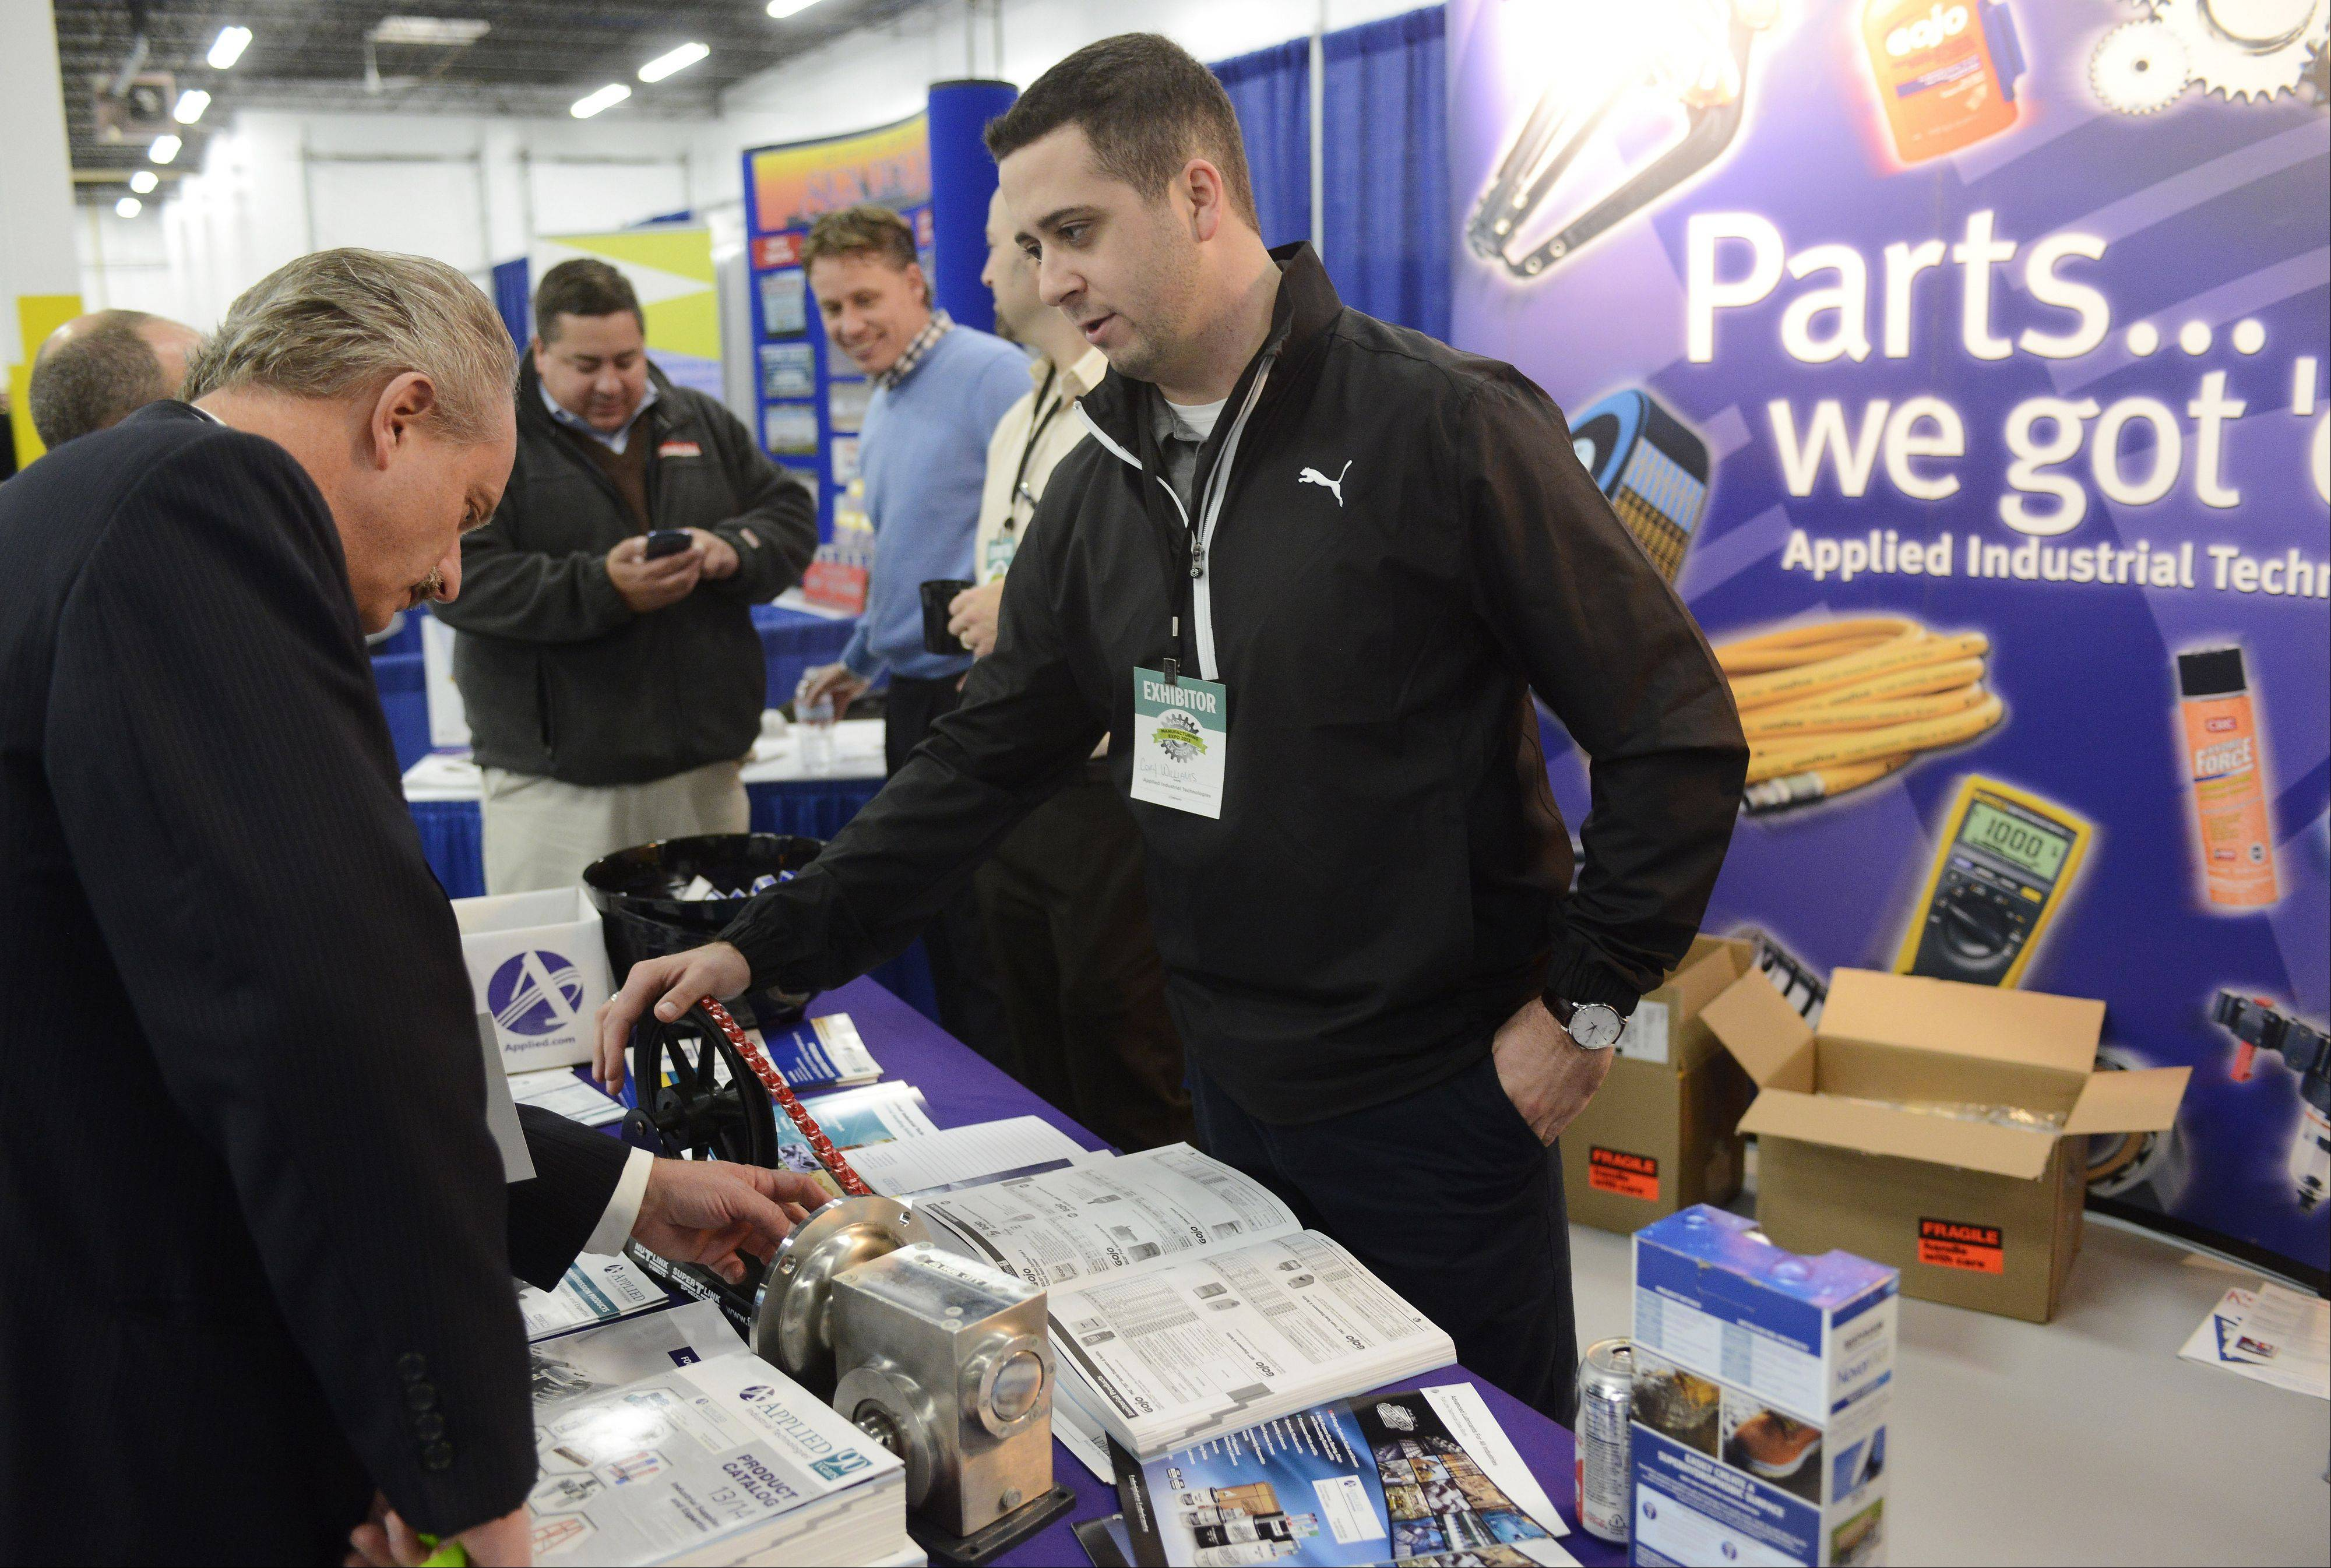 Gregory Godfrey of First American Bank, Addison, chats with Cory Williams of Applied Industrial Technologies while viewing the company's products during the Elk Grove Village business expo Tuesday.